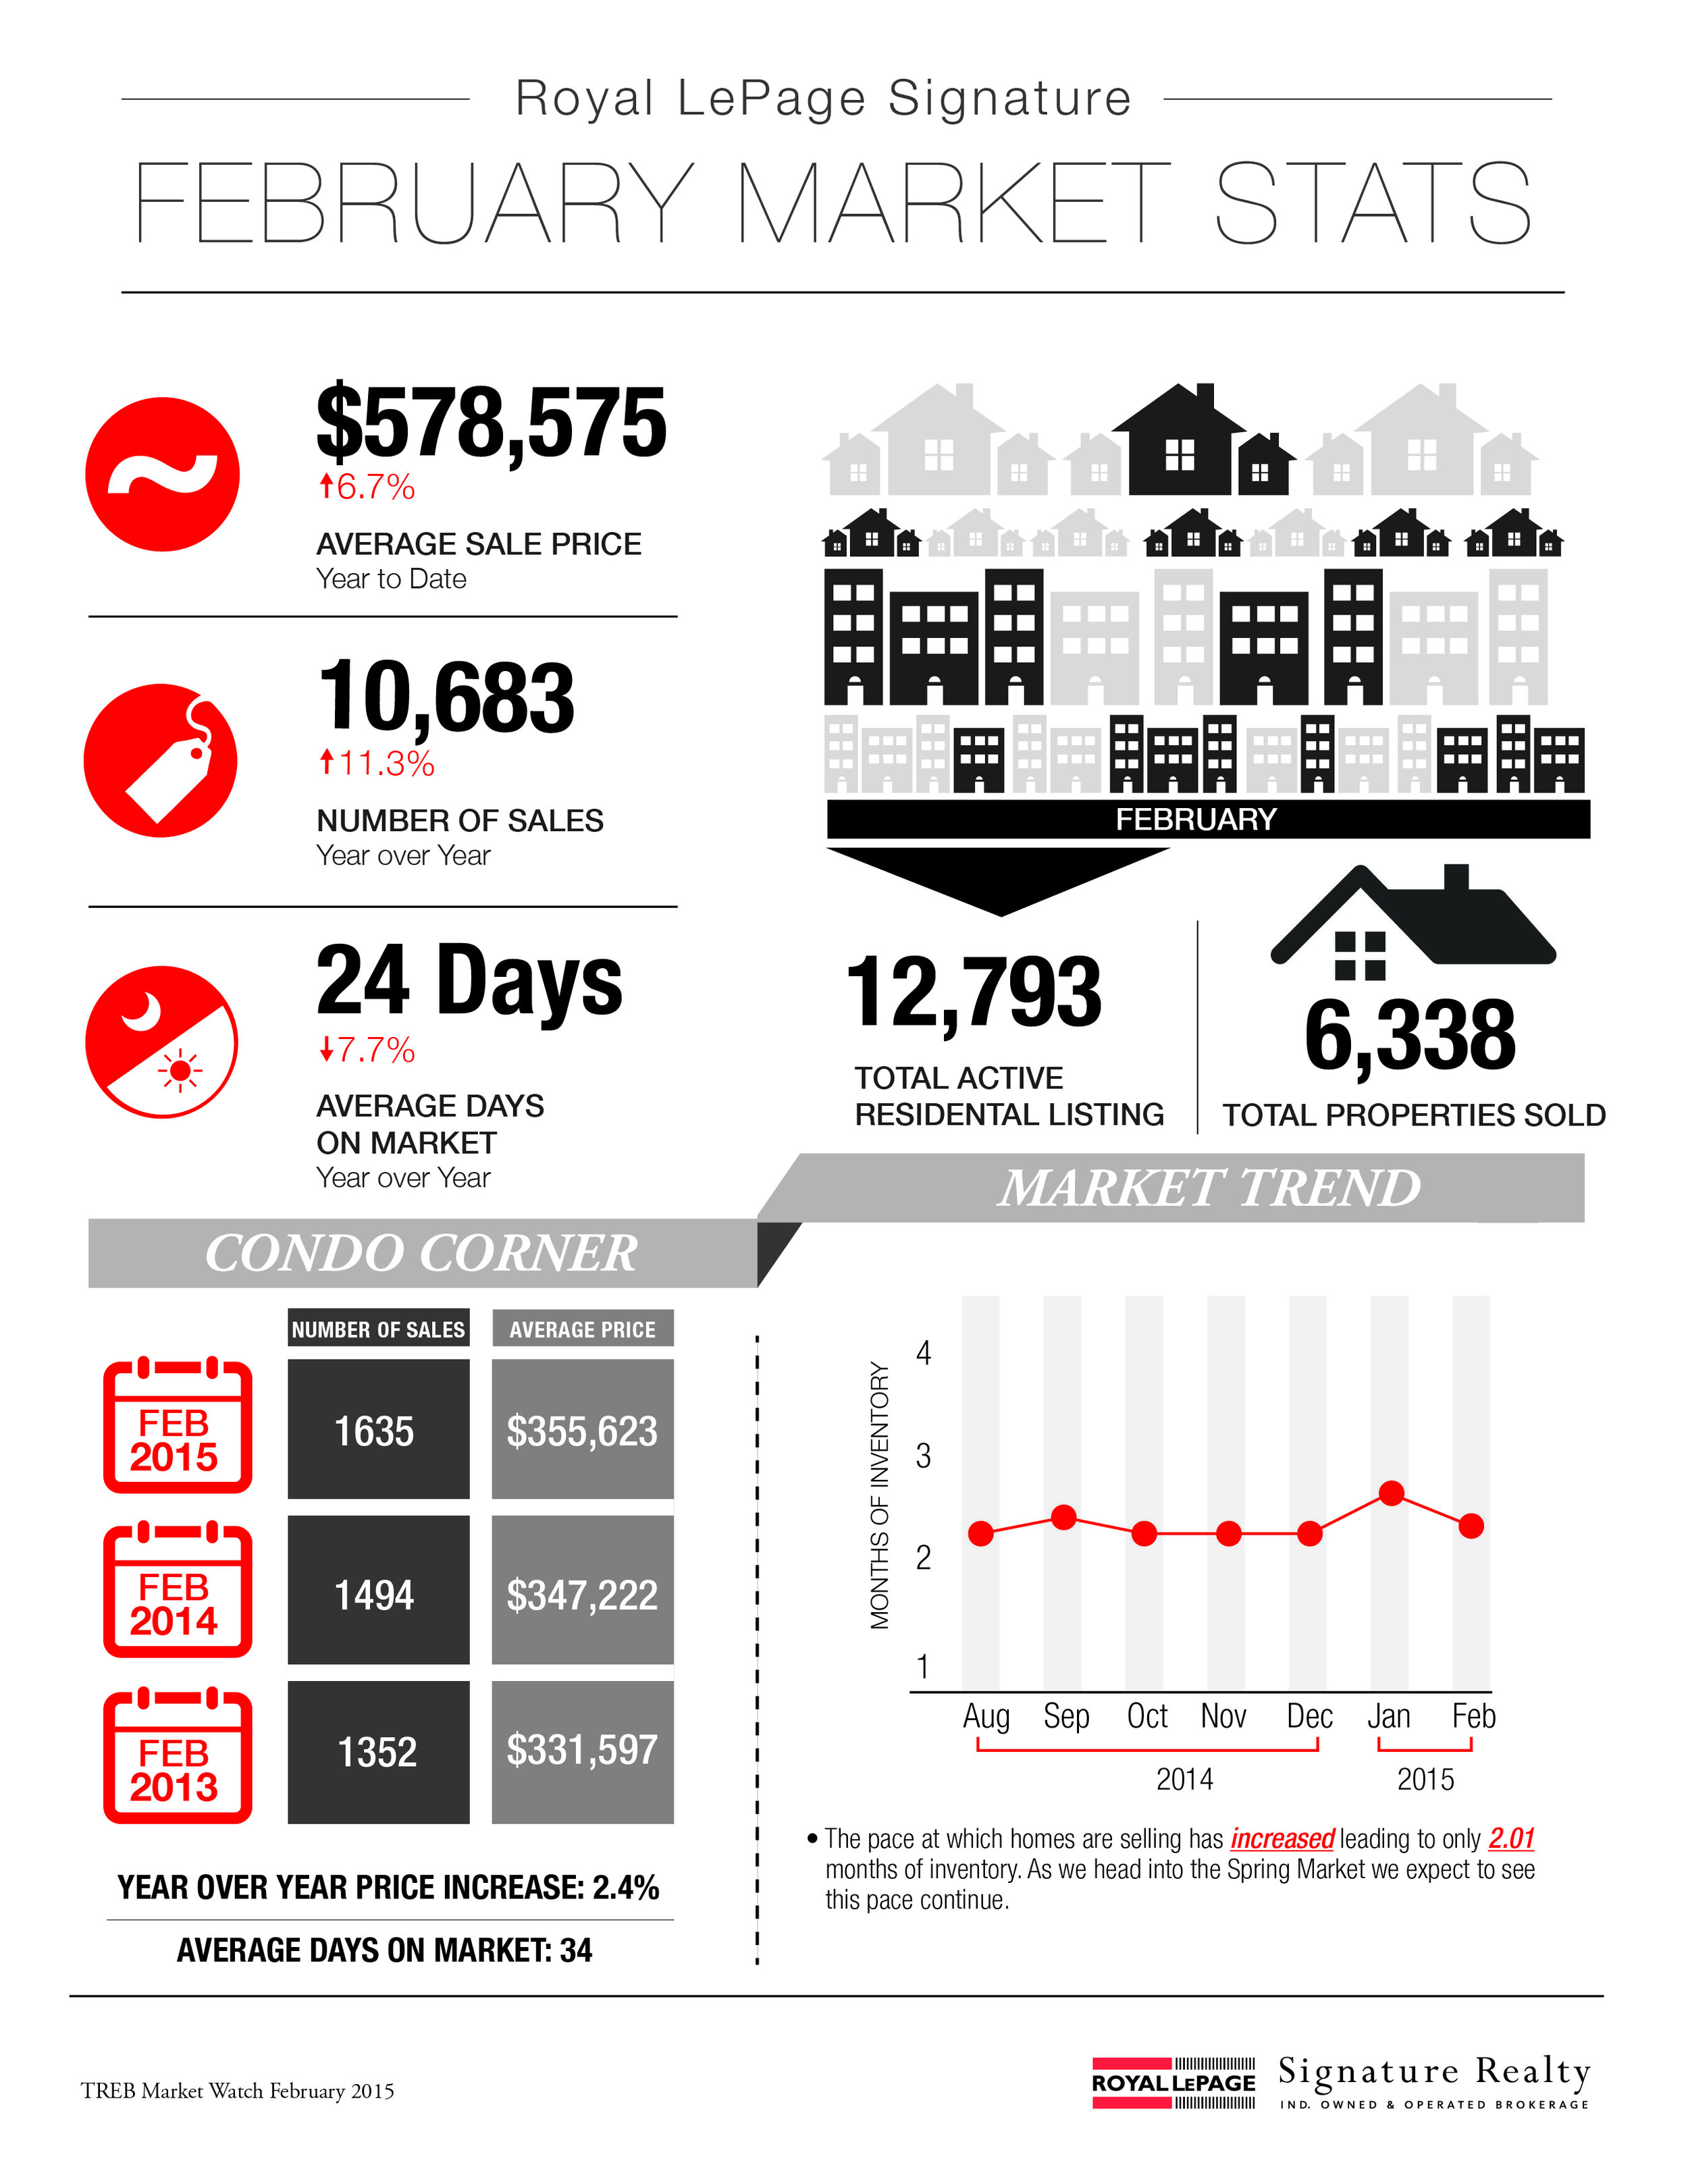 February 2015 Market Stats: Infographic & Report Photo